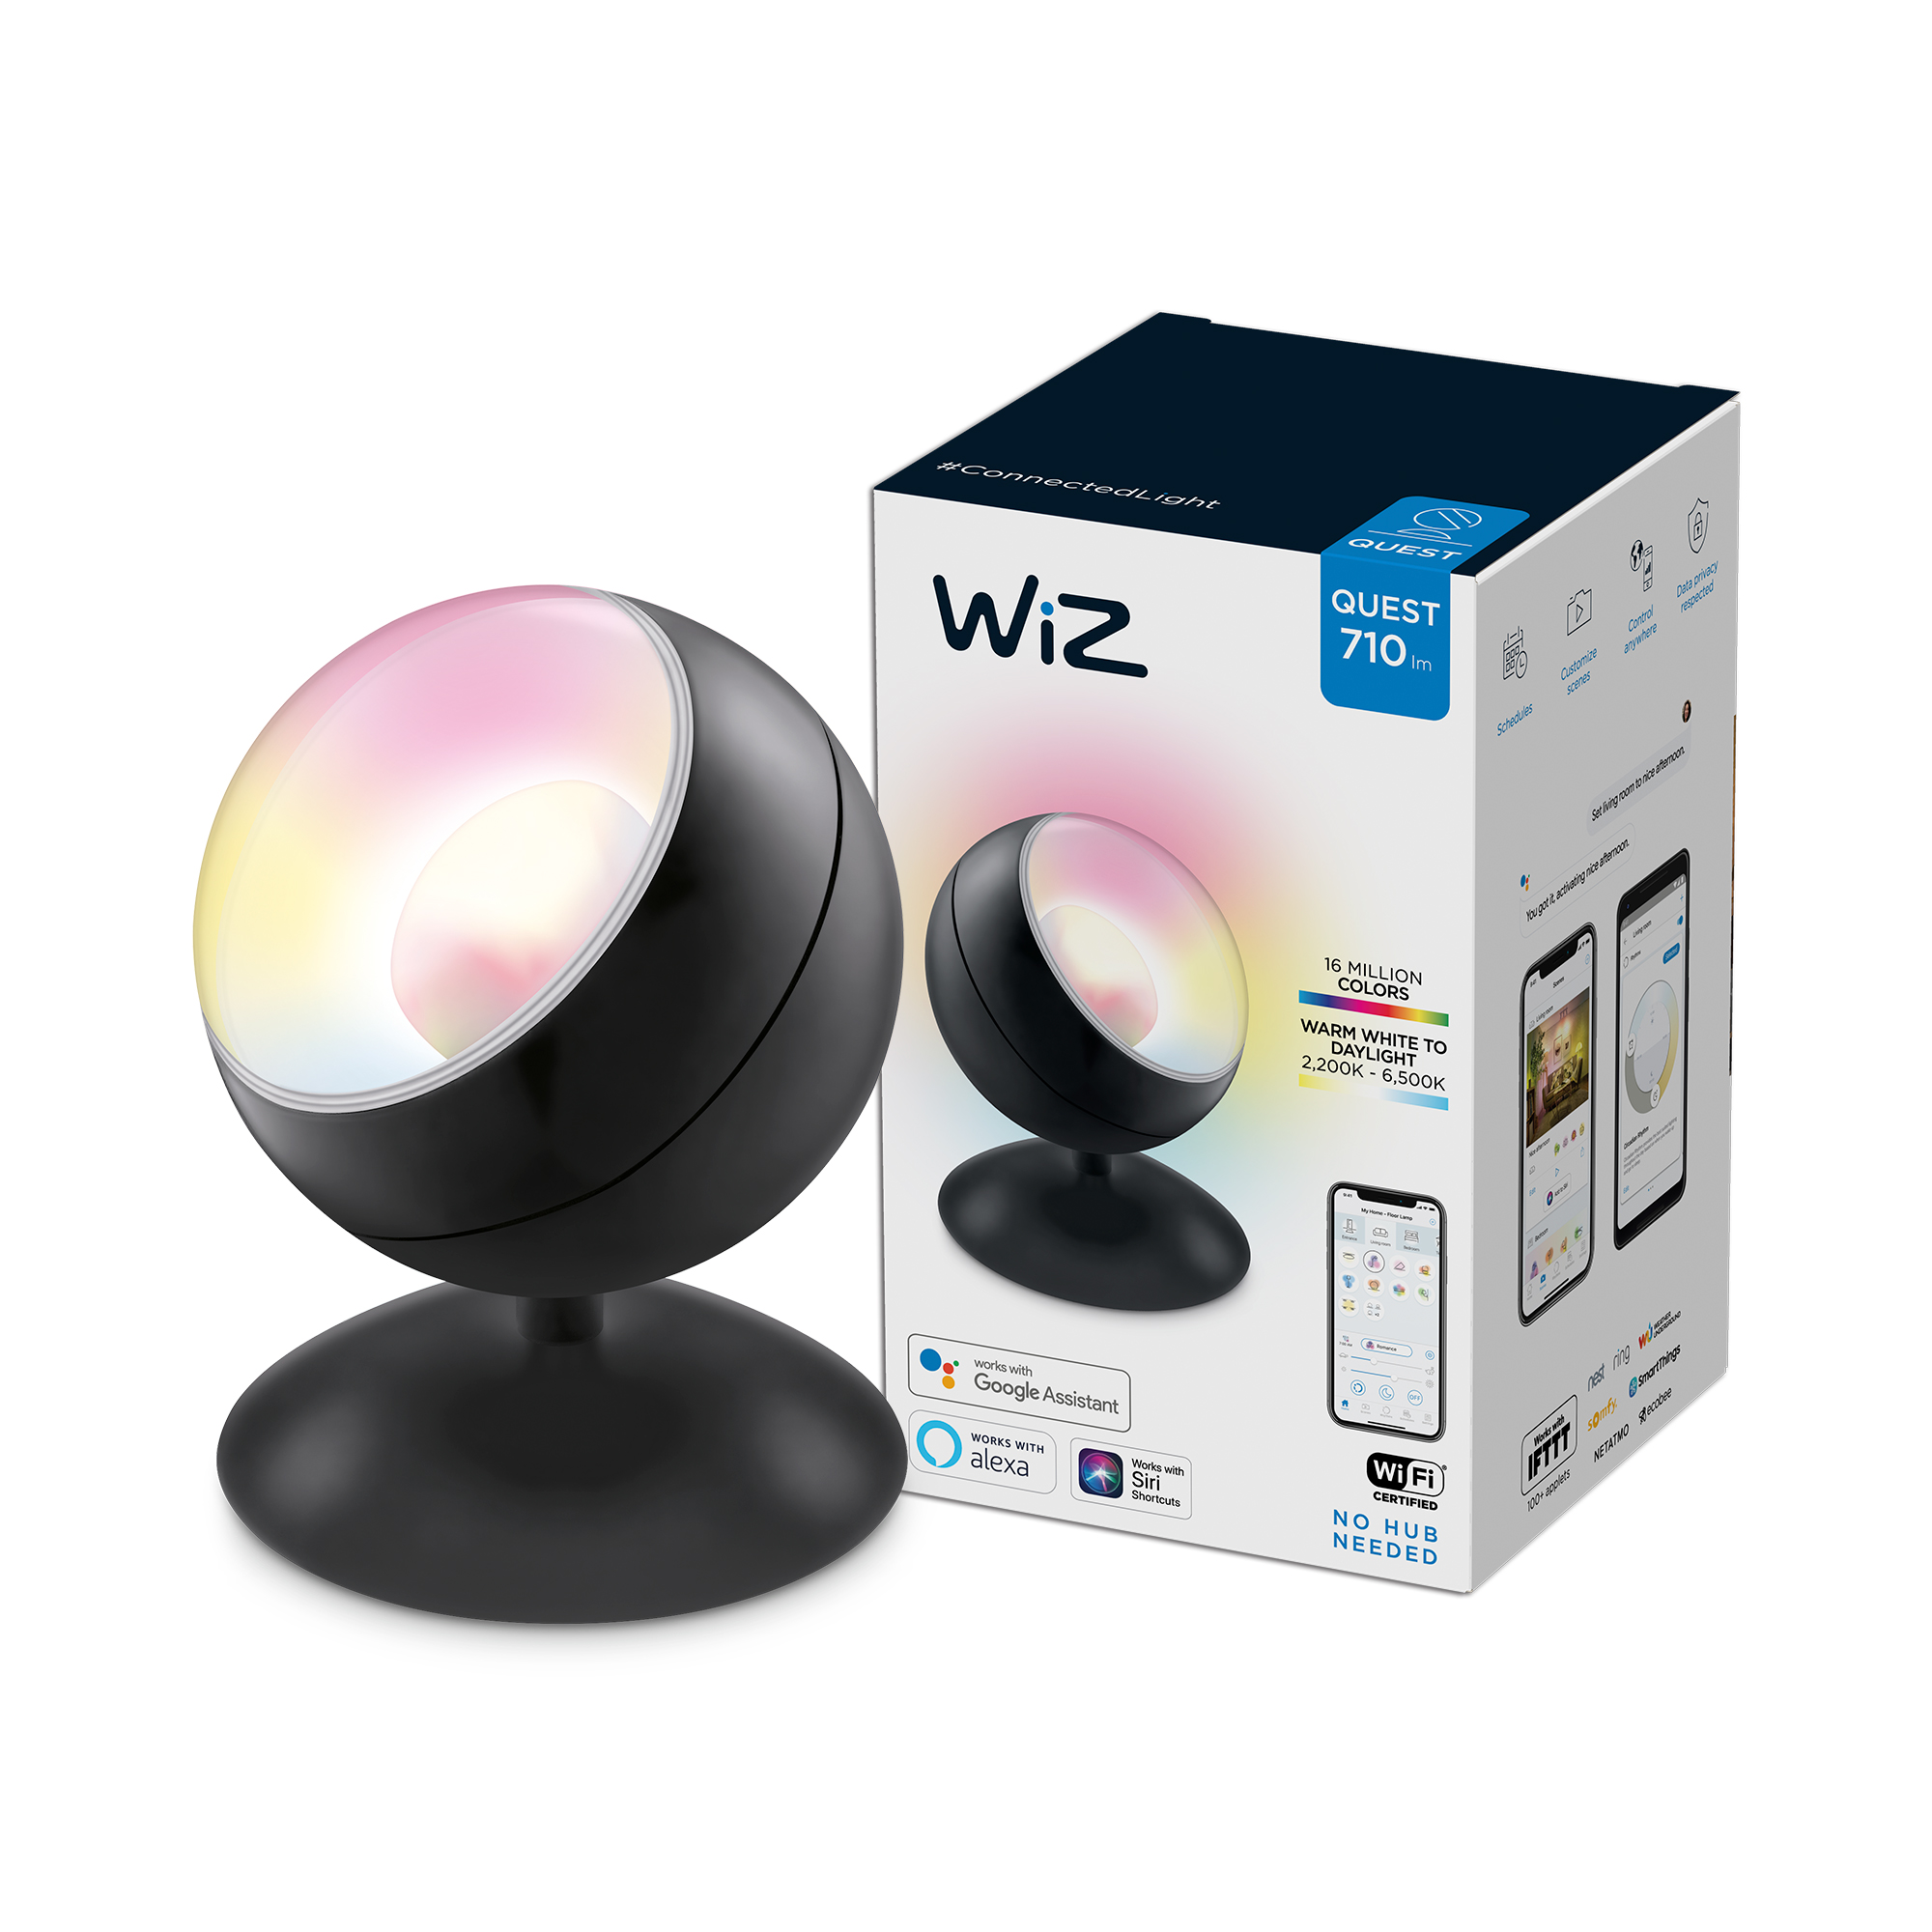 WiZ -Wi-Fi Portable Quest black